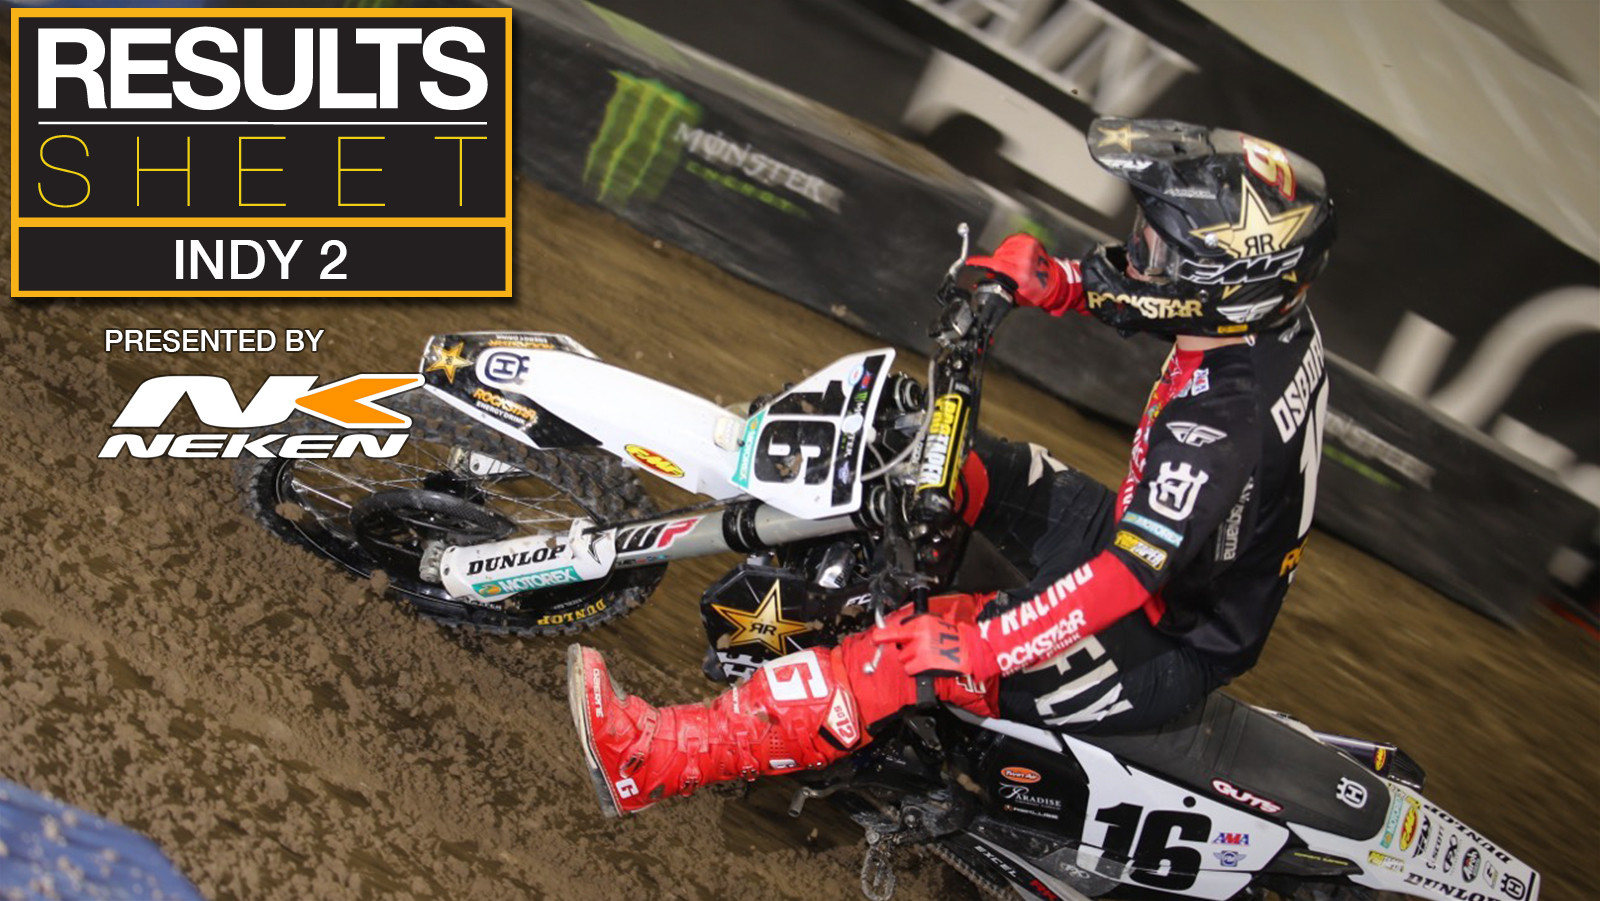 Results Sheet: 2021 Indianapolis 2 Supercross